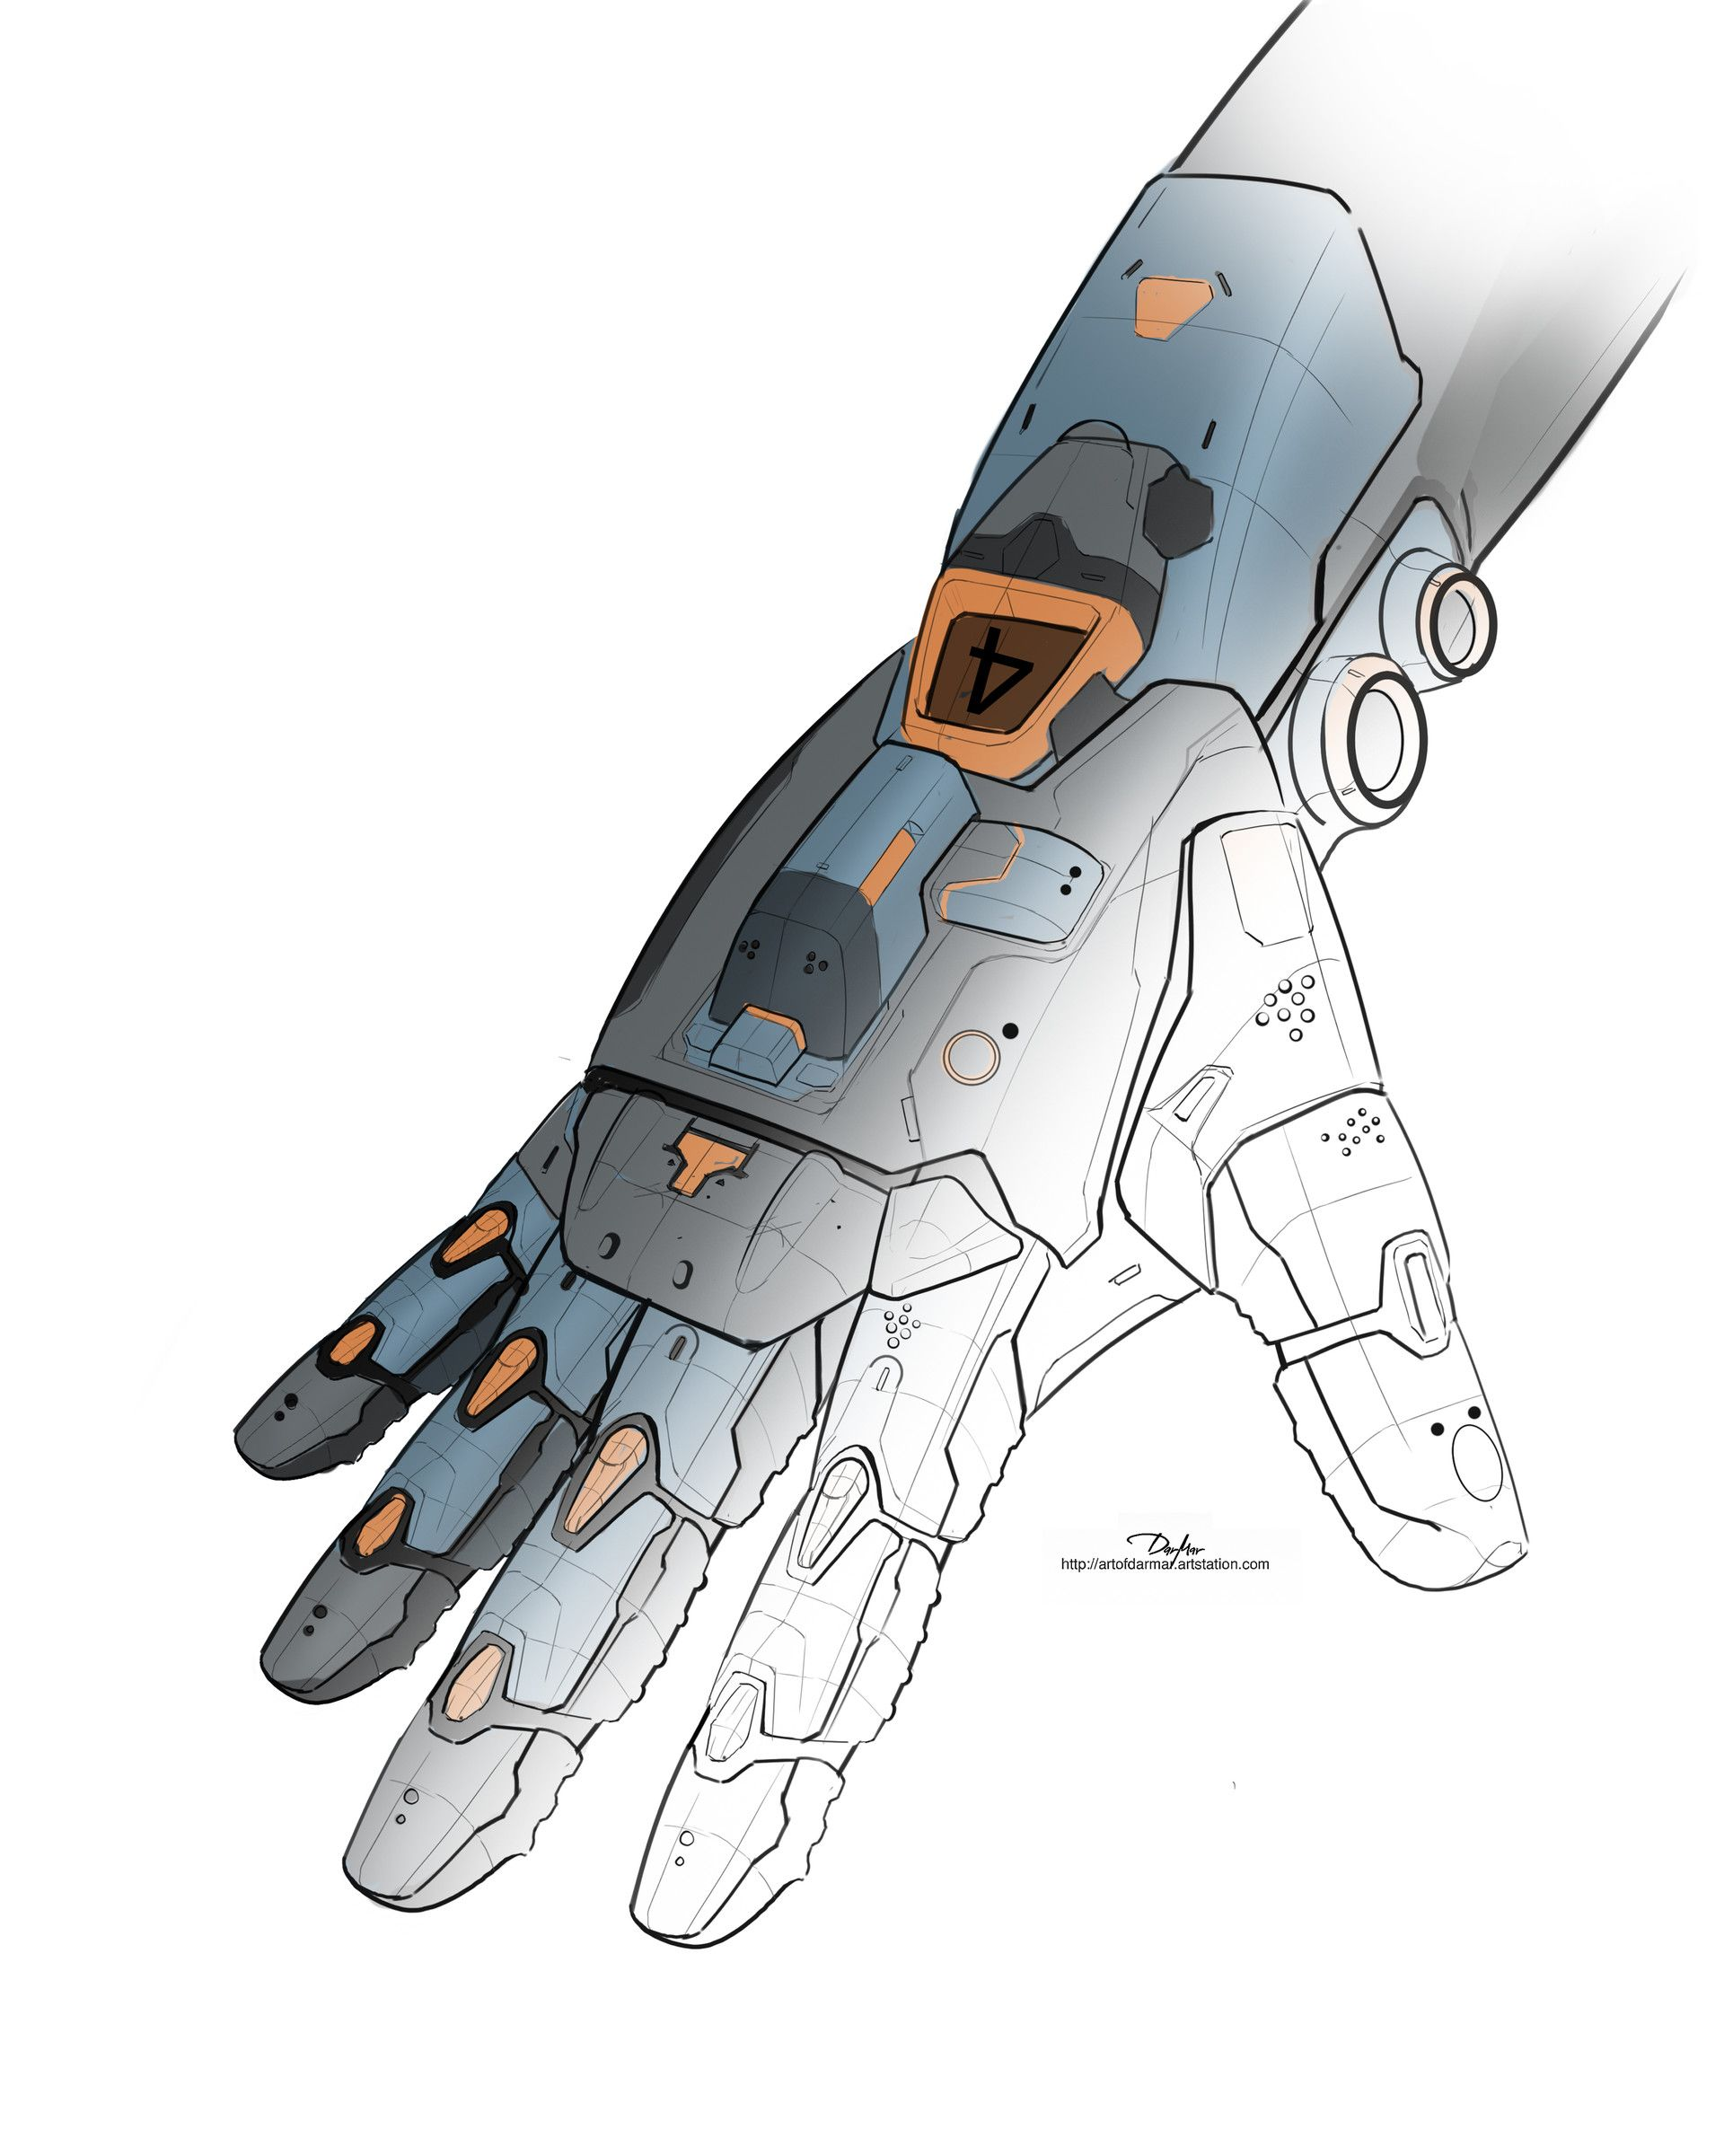 ArtStation - MECHANICAL ARMOR HAND 01, DARKO DARMAR MARKOVIC ...